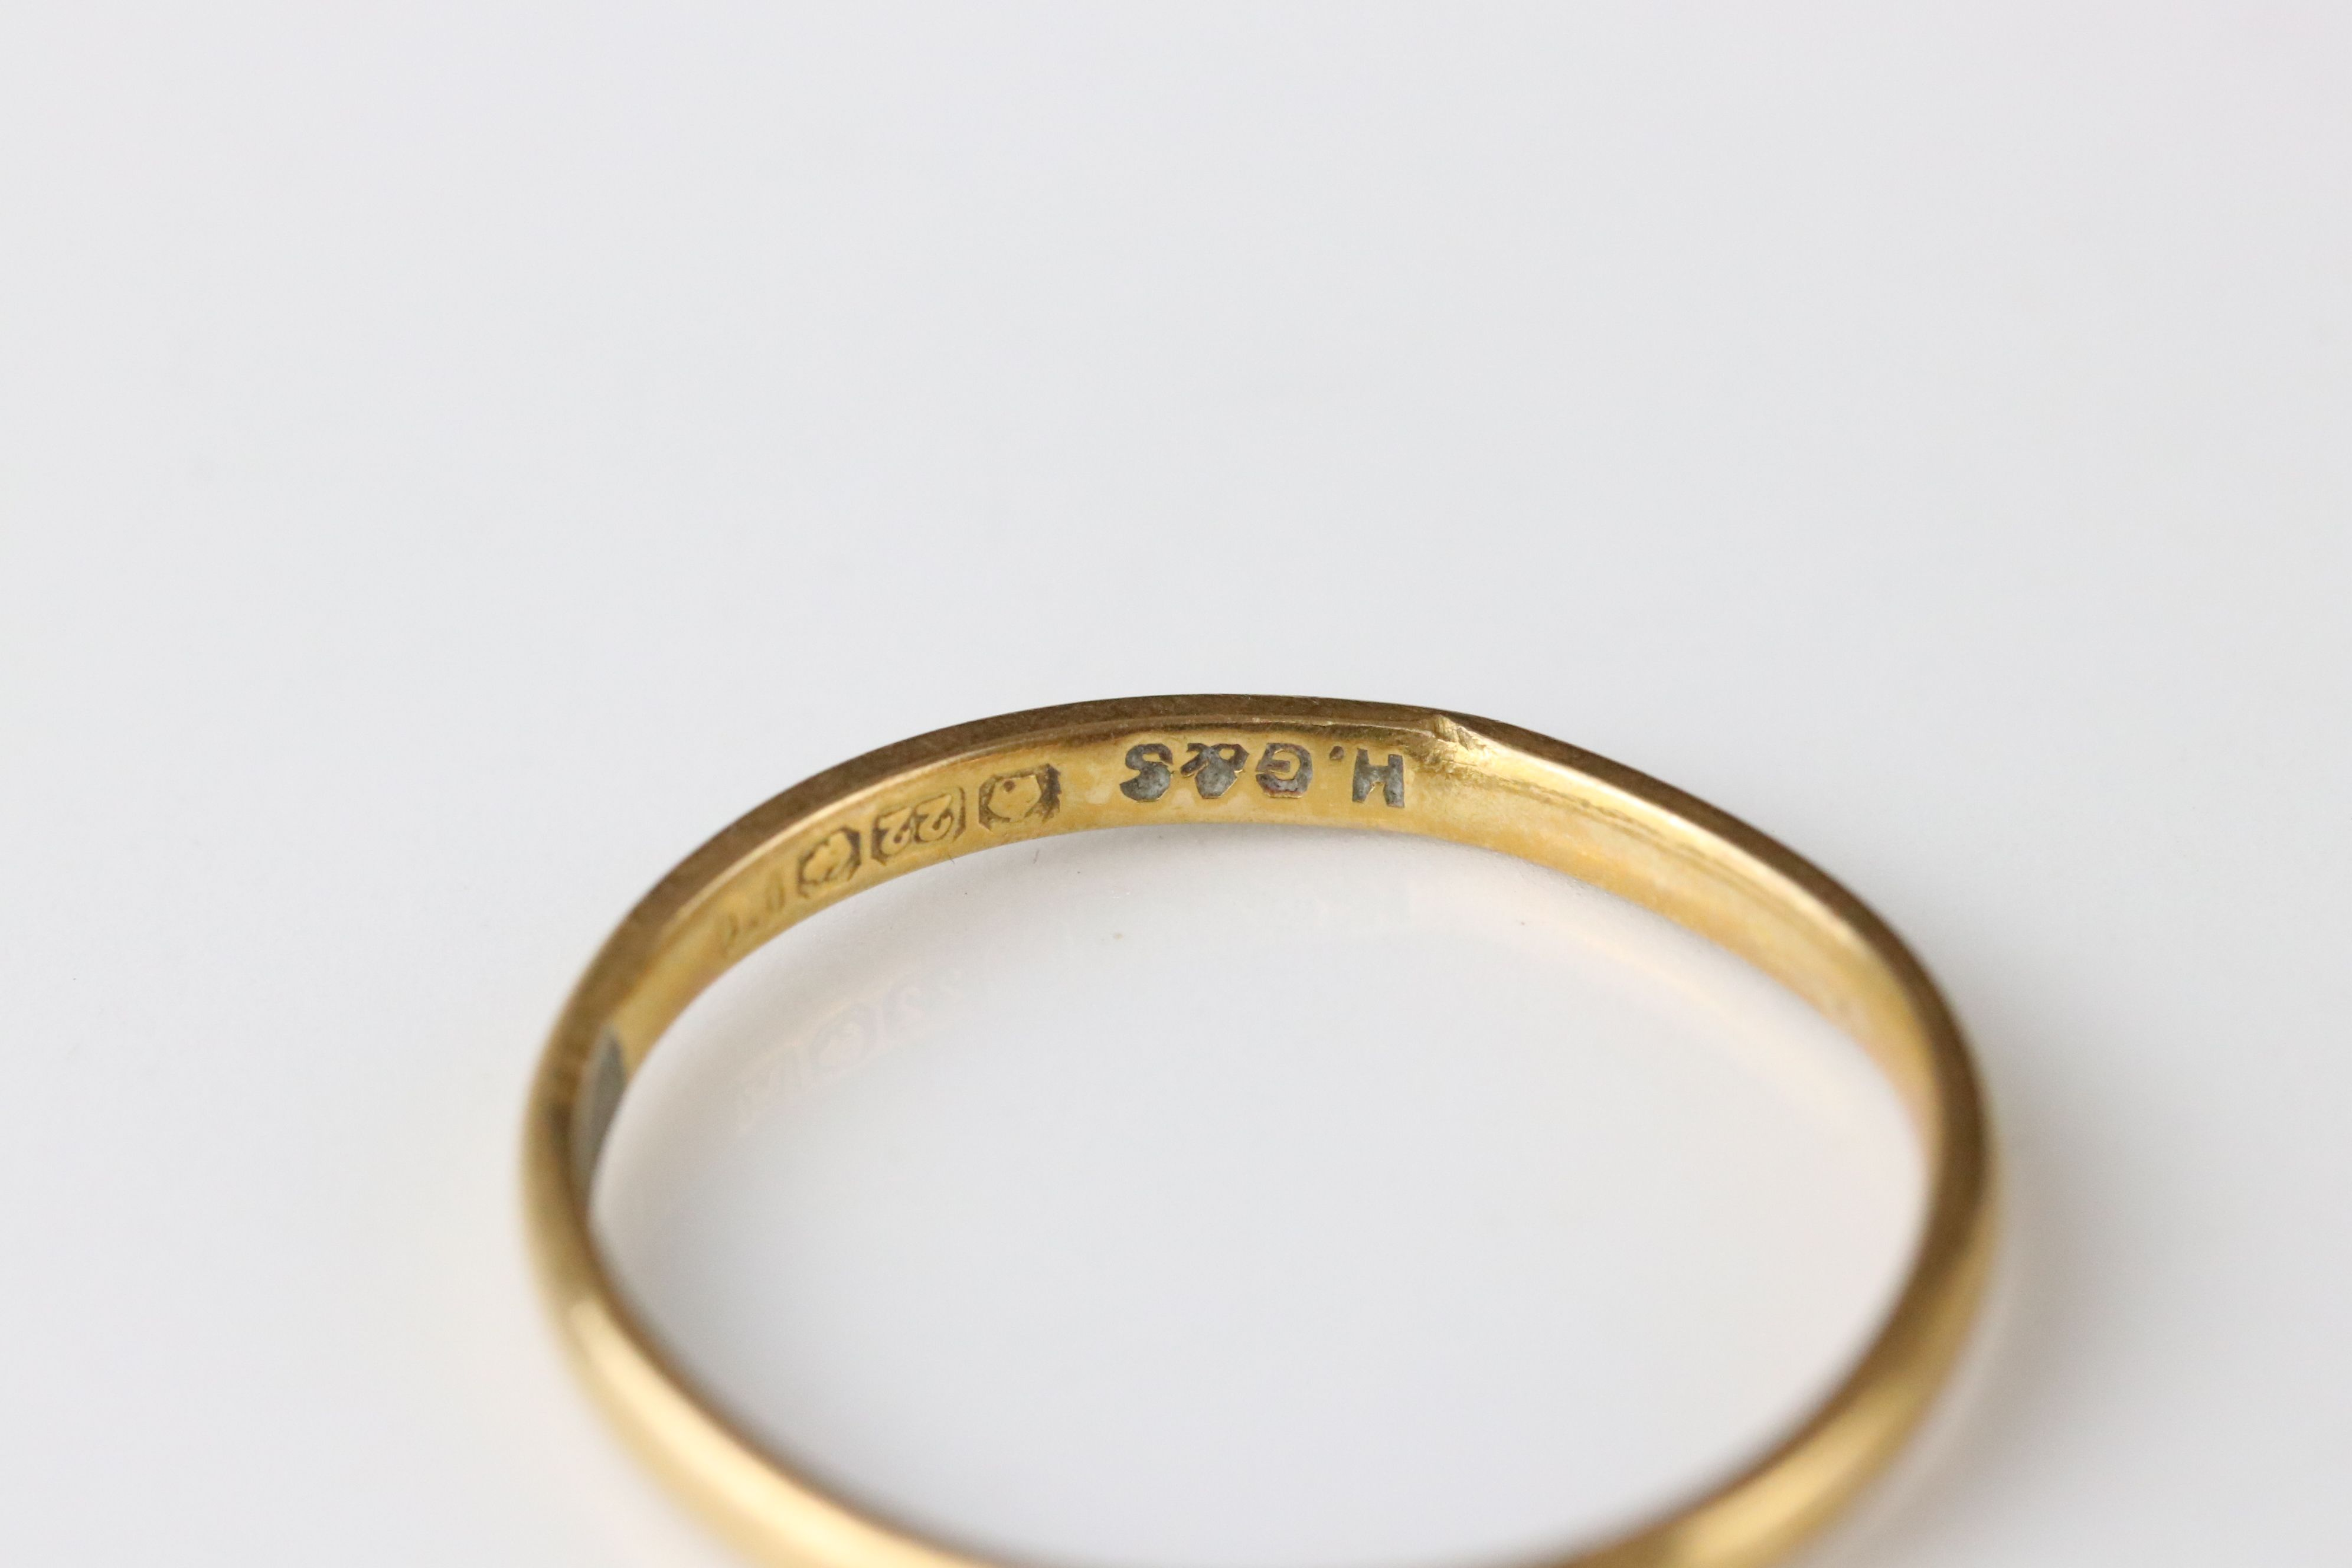 22ct yellow gold wedding band, width approx 1.5mm, ring size L - Image 2 of 3